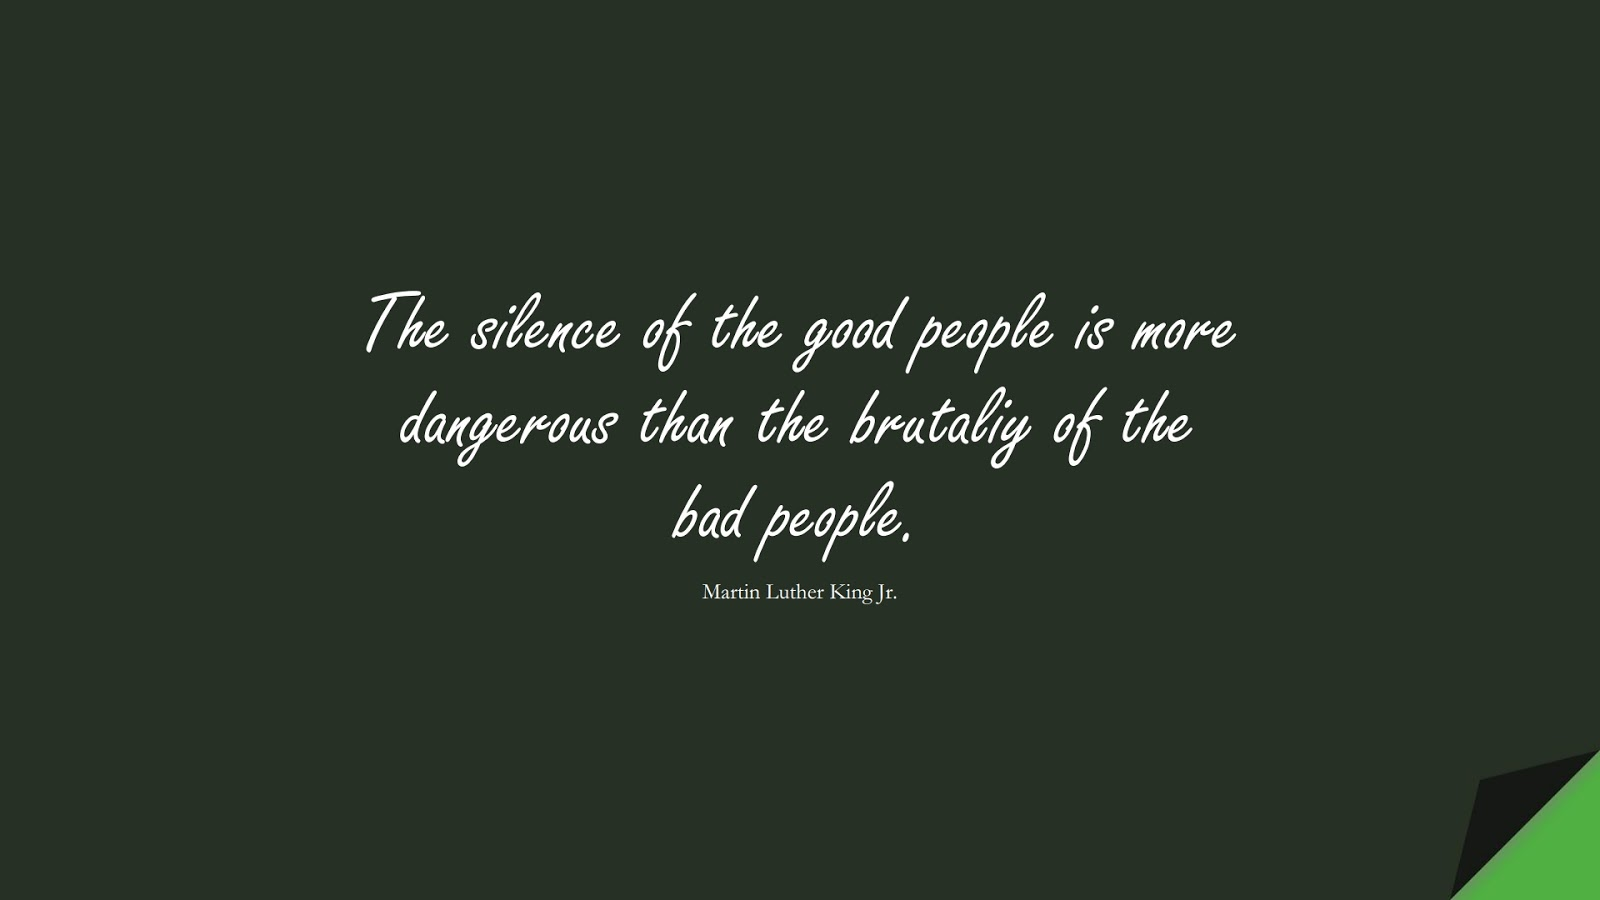 The silence of the good people is more dangerous than the brutaliy of the bad people. (Martin Luther King Jr.);  #MartinLutherKingJrQuotes